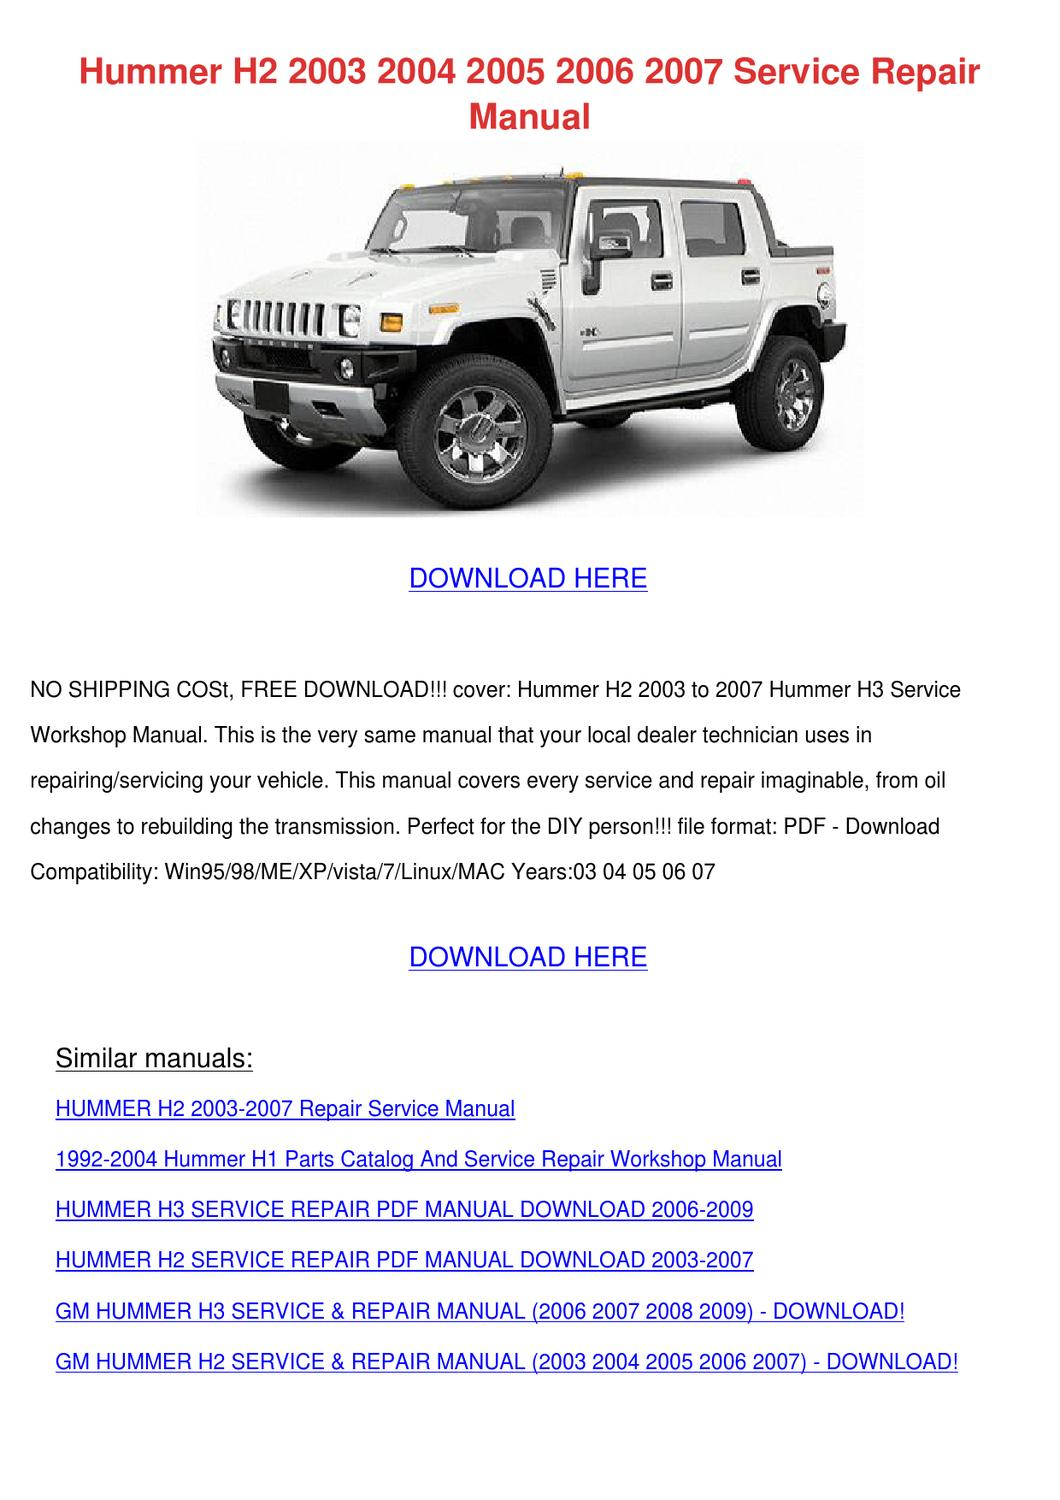 hummer h2 2003 2004 2005 2006 2007 service re by keirahodge - issuu